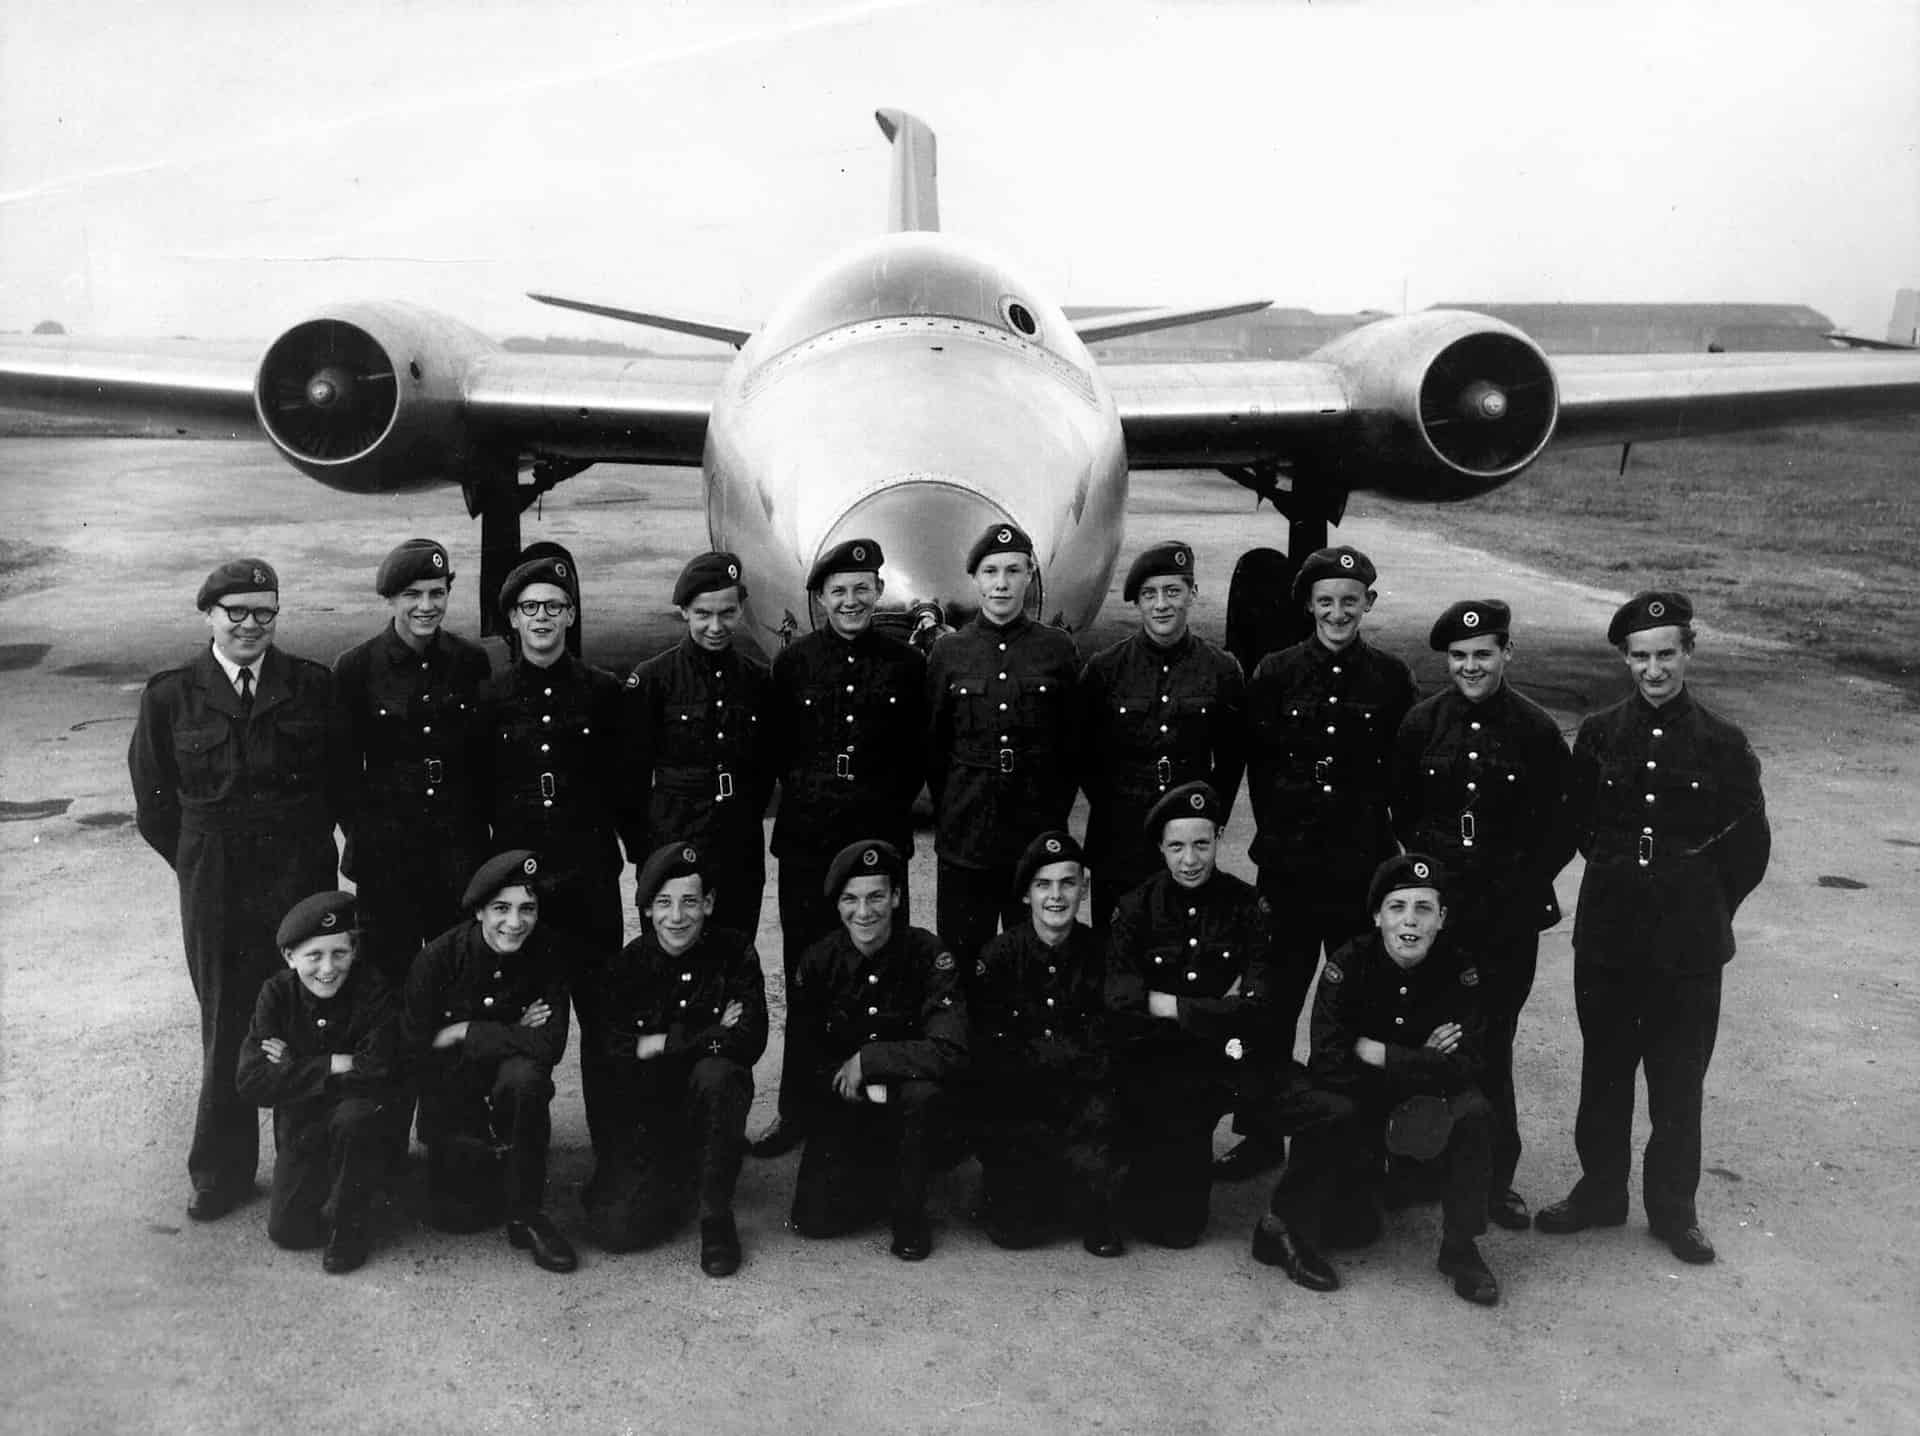 Air Cadets 2156 Sqn, Old Hill at Annual Camp RAF Binbrook 1953/4. I am on the front row, third from the right.